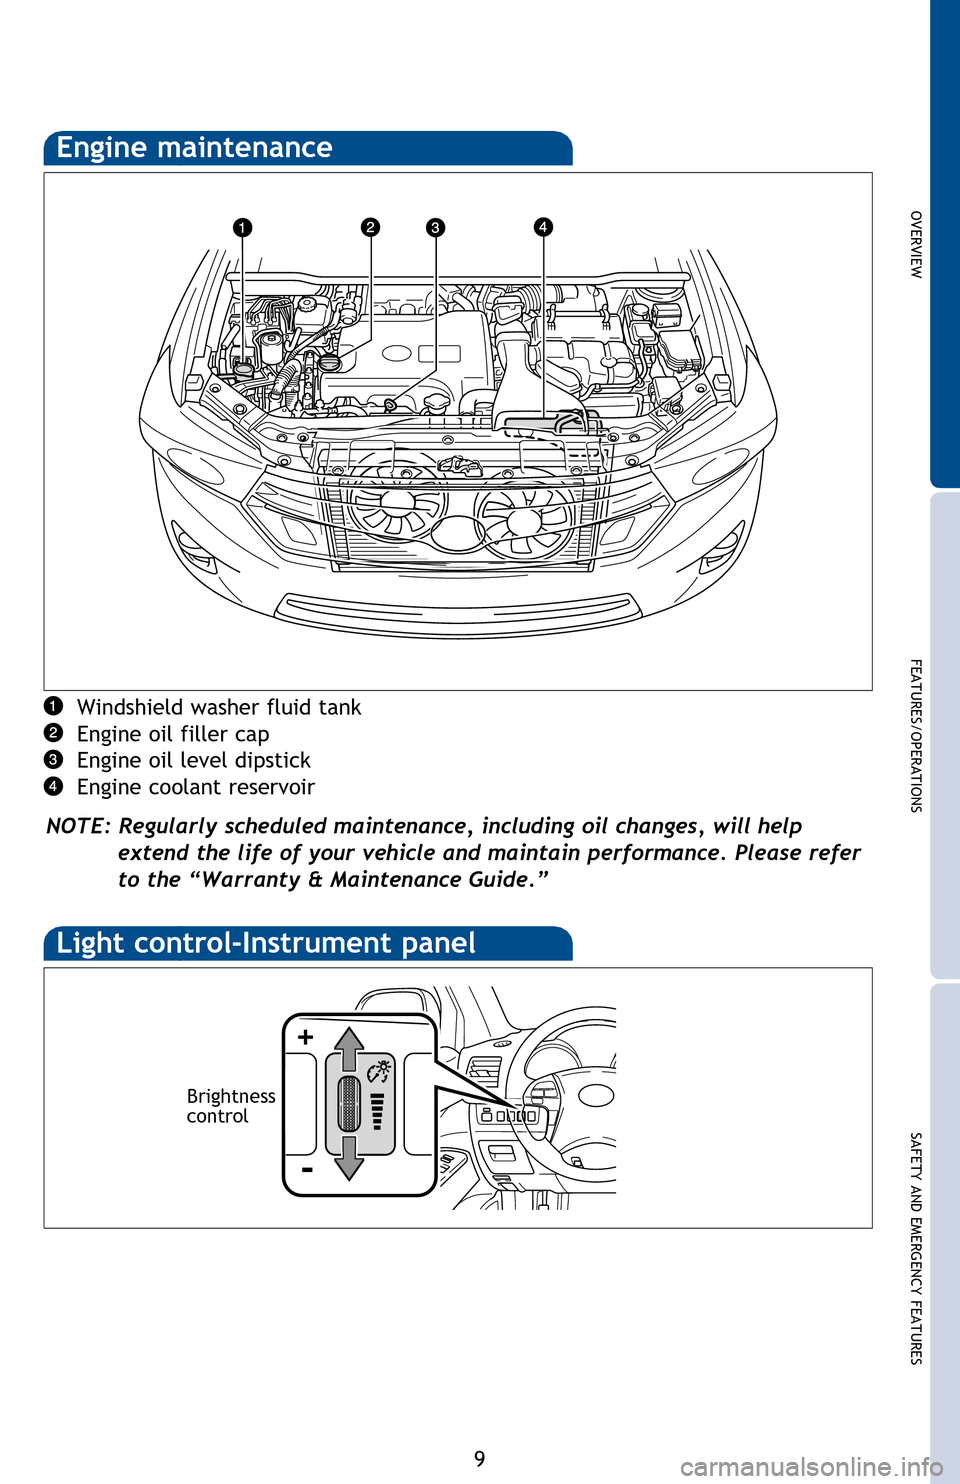 Check Engine Toyota Highlander Hybrid 2013 Xu50 3g Quick 2006 Diagram Reference Guide Page 11